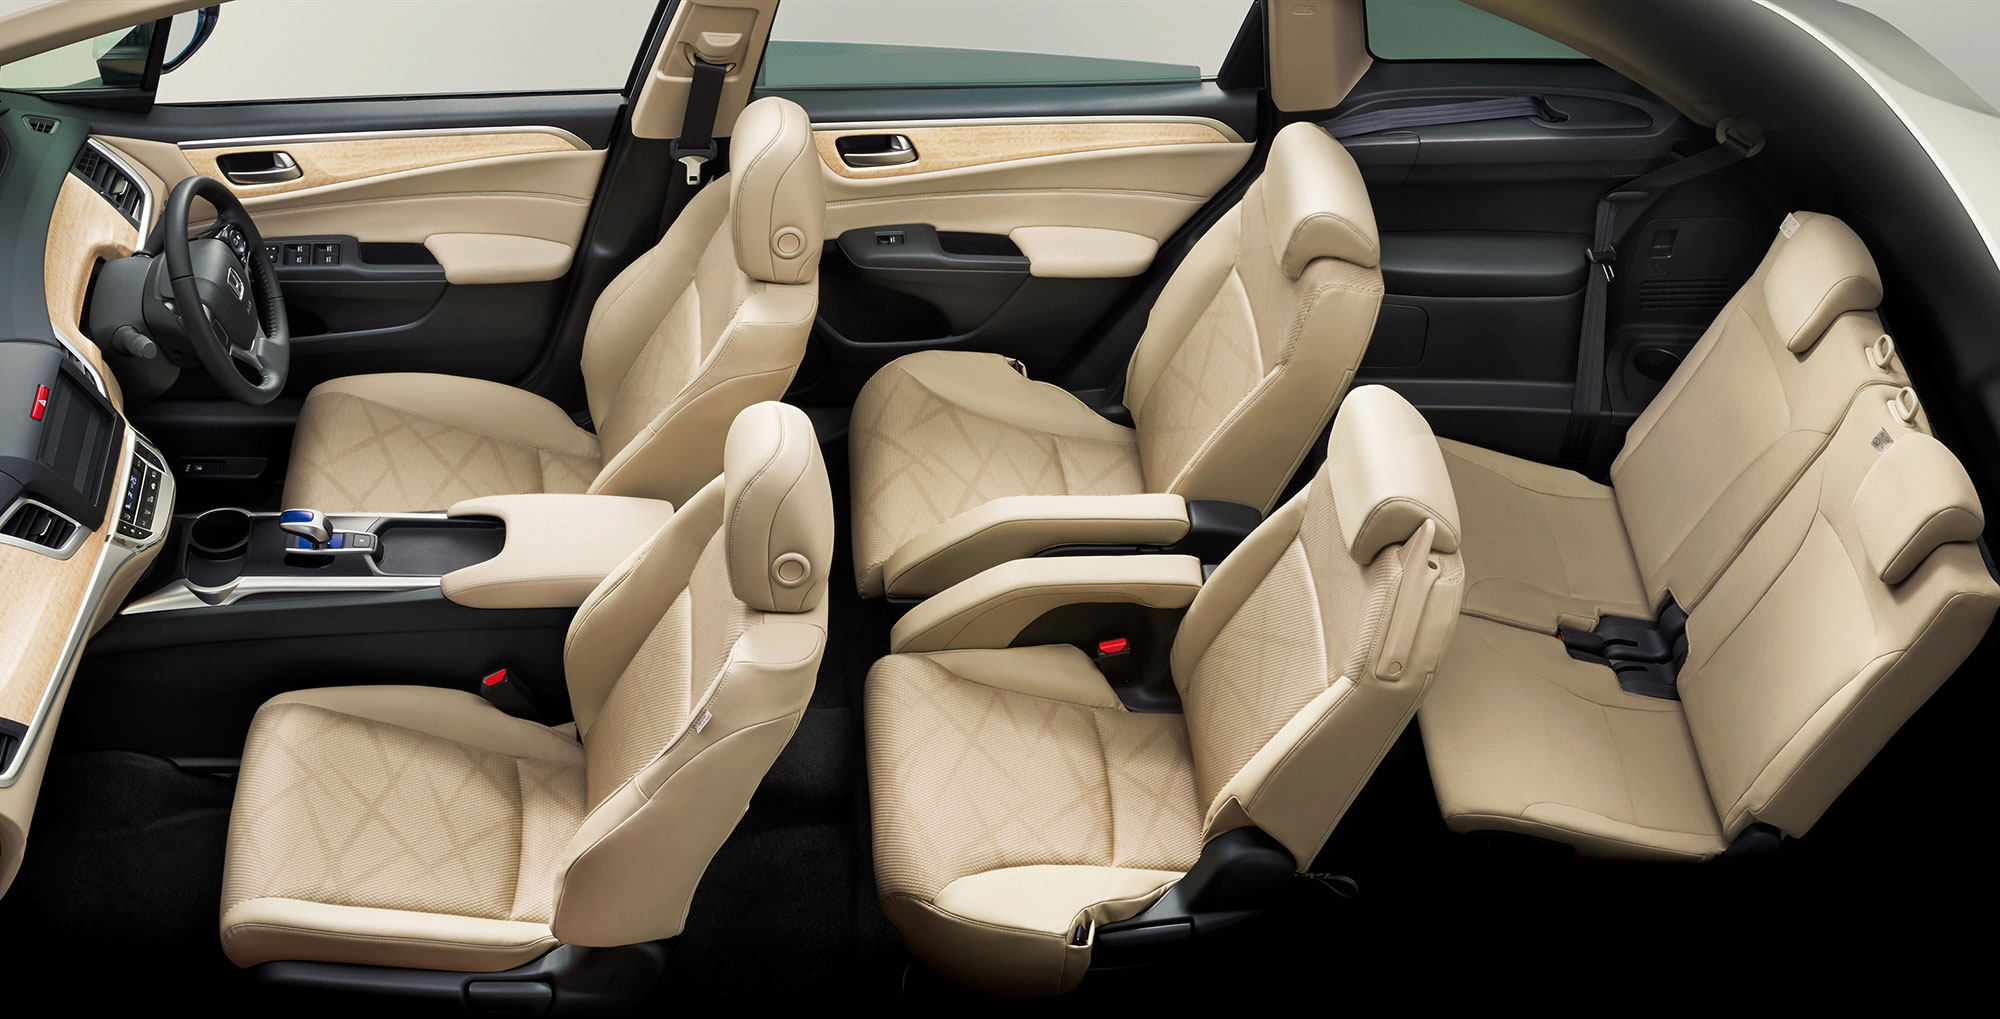 honda jade hybrid 6 seater mpv launching in japan paul tan image 301231. Black Bedroom Furniture Sets. Home Design Ideas